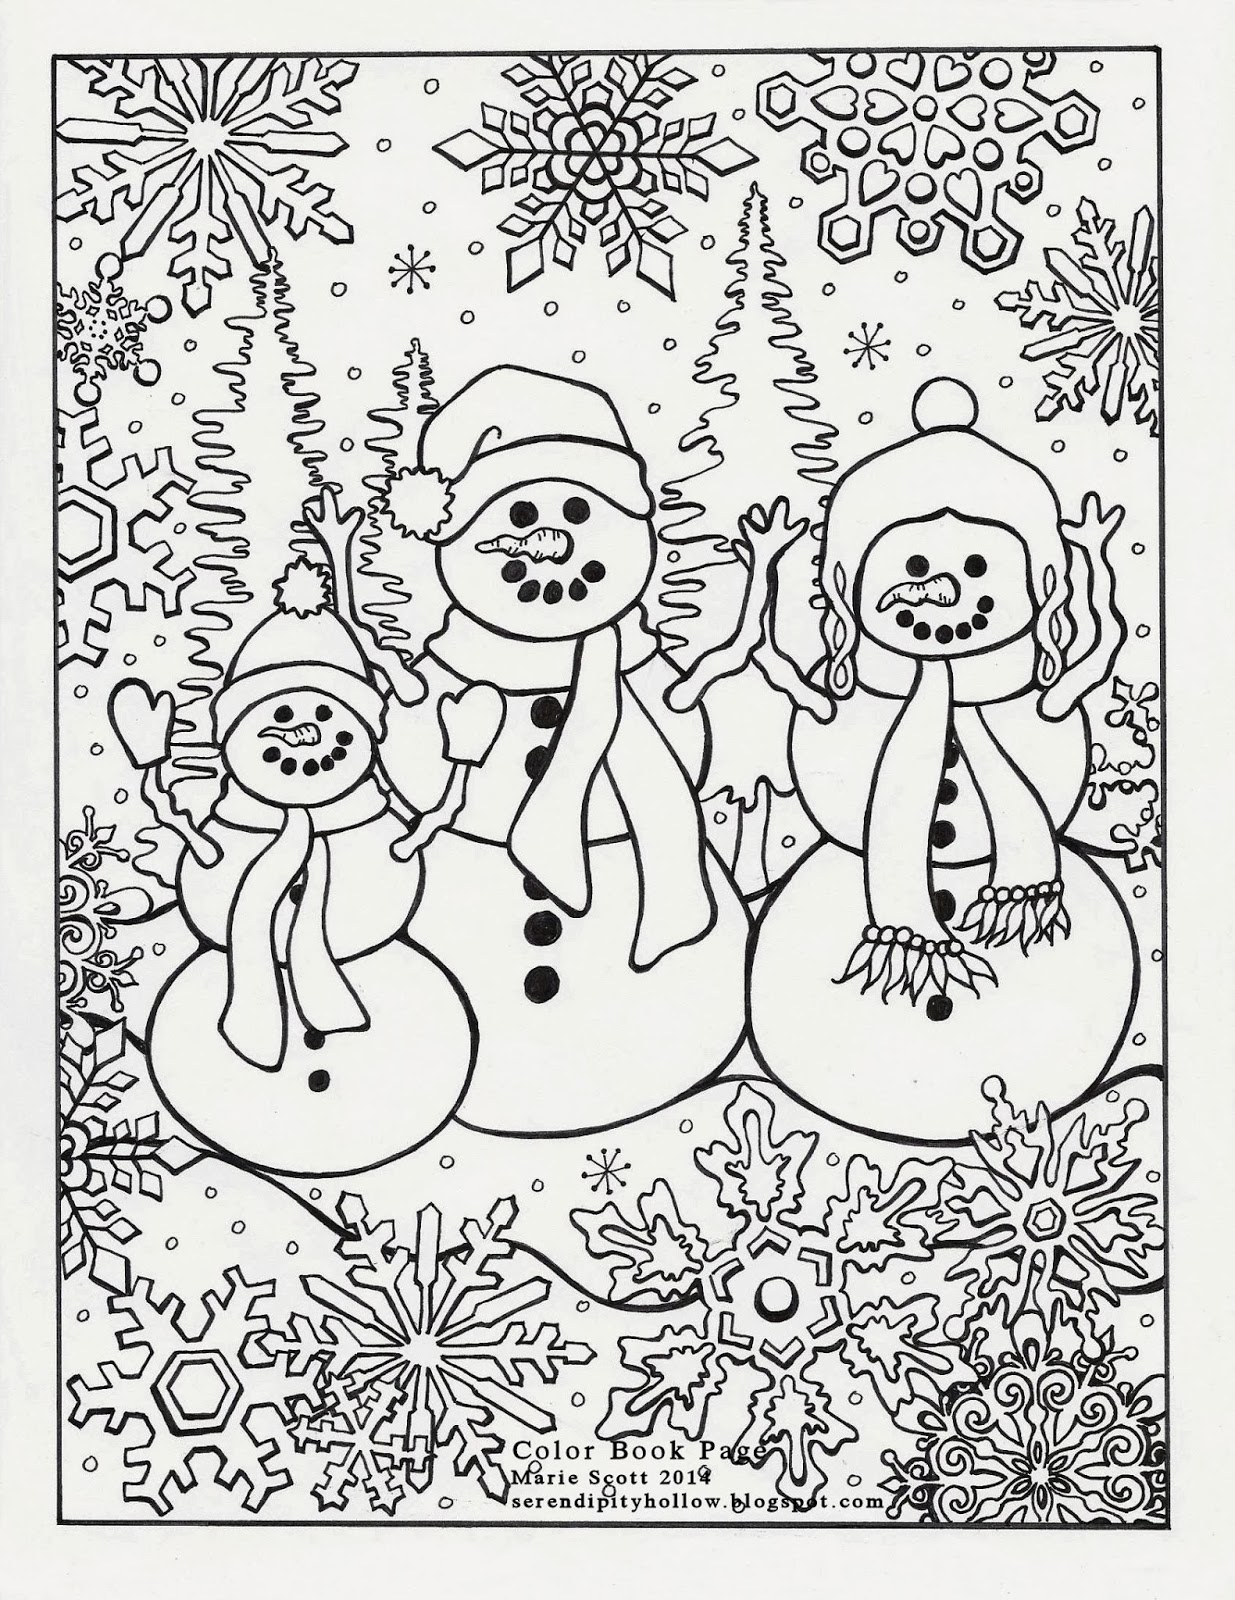 Serendipity Hollow Winter Coloring Book Page